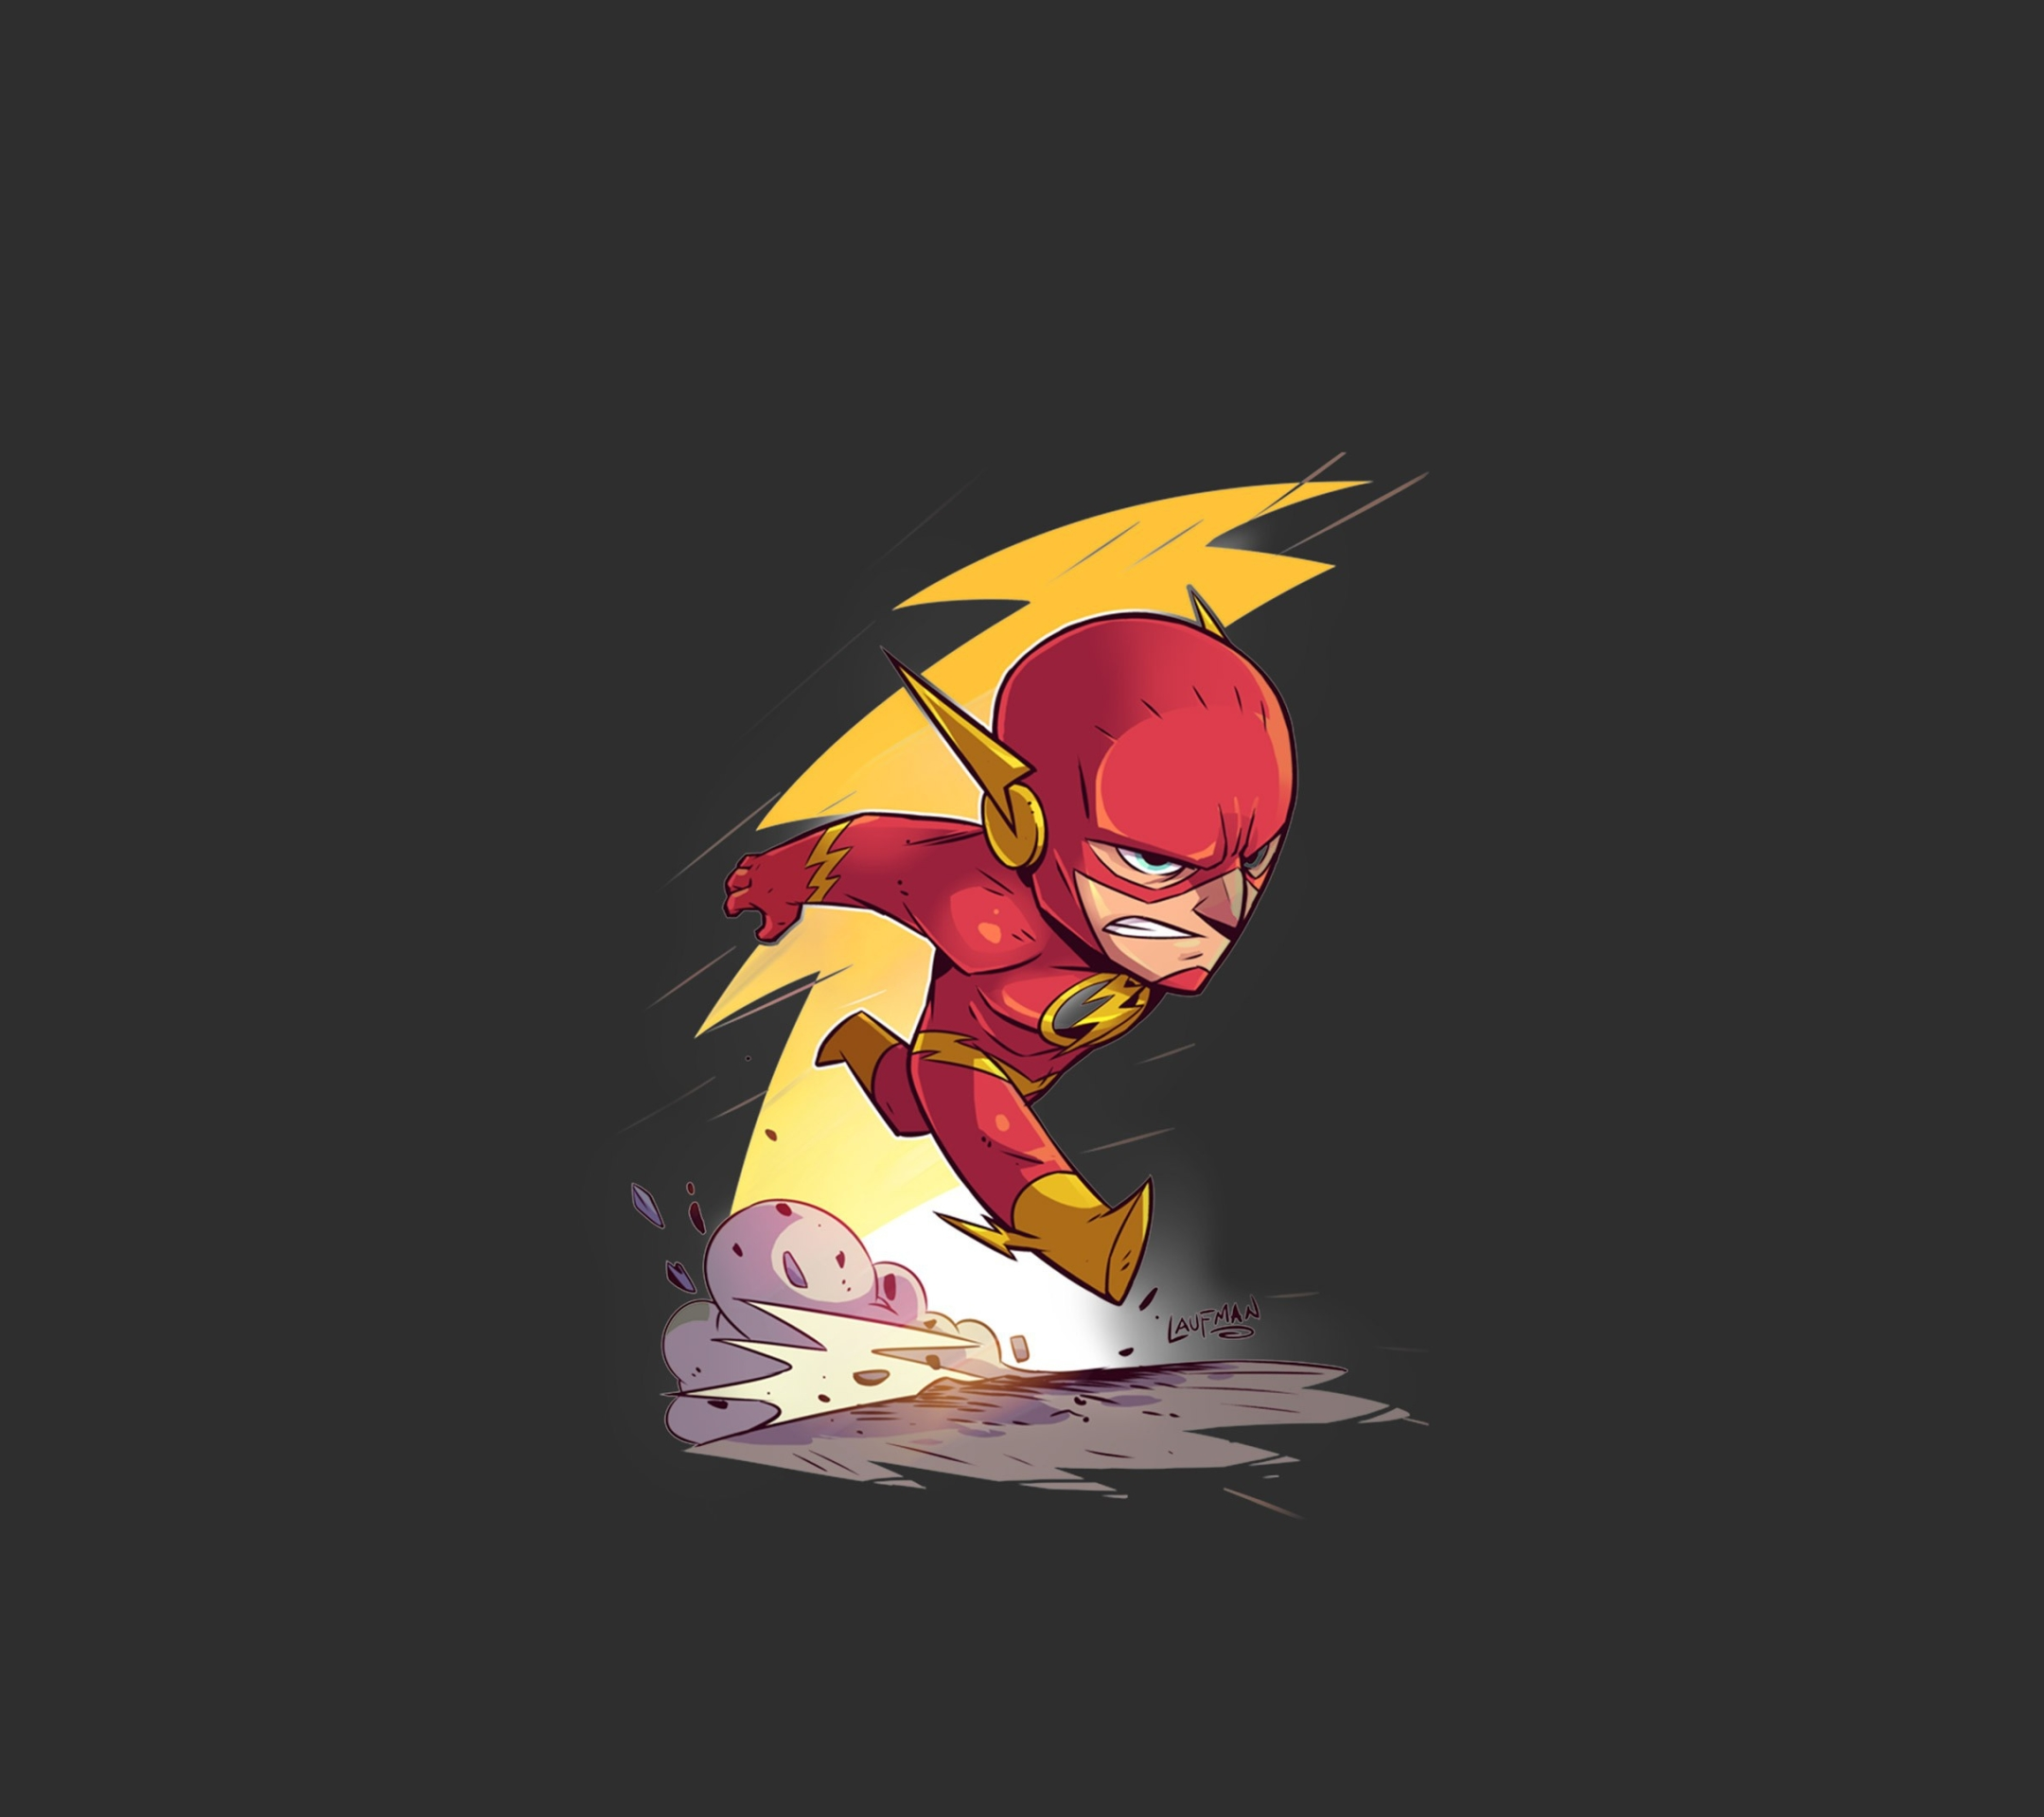 comics/flash (2160x1920) wallpaper id: 683705 - mobile abyss